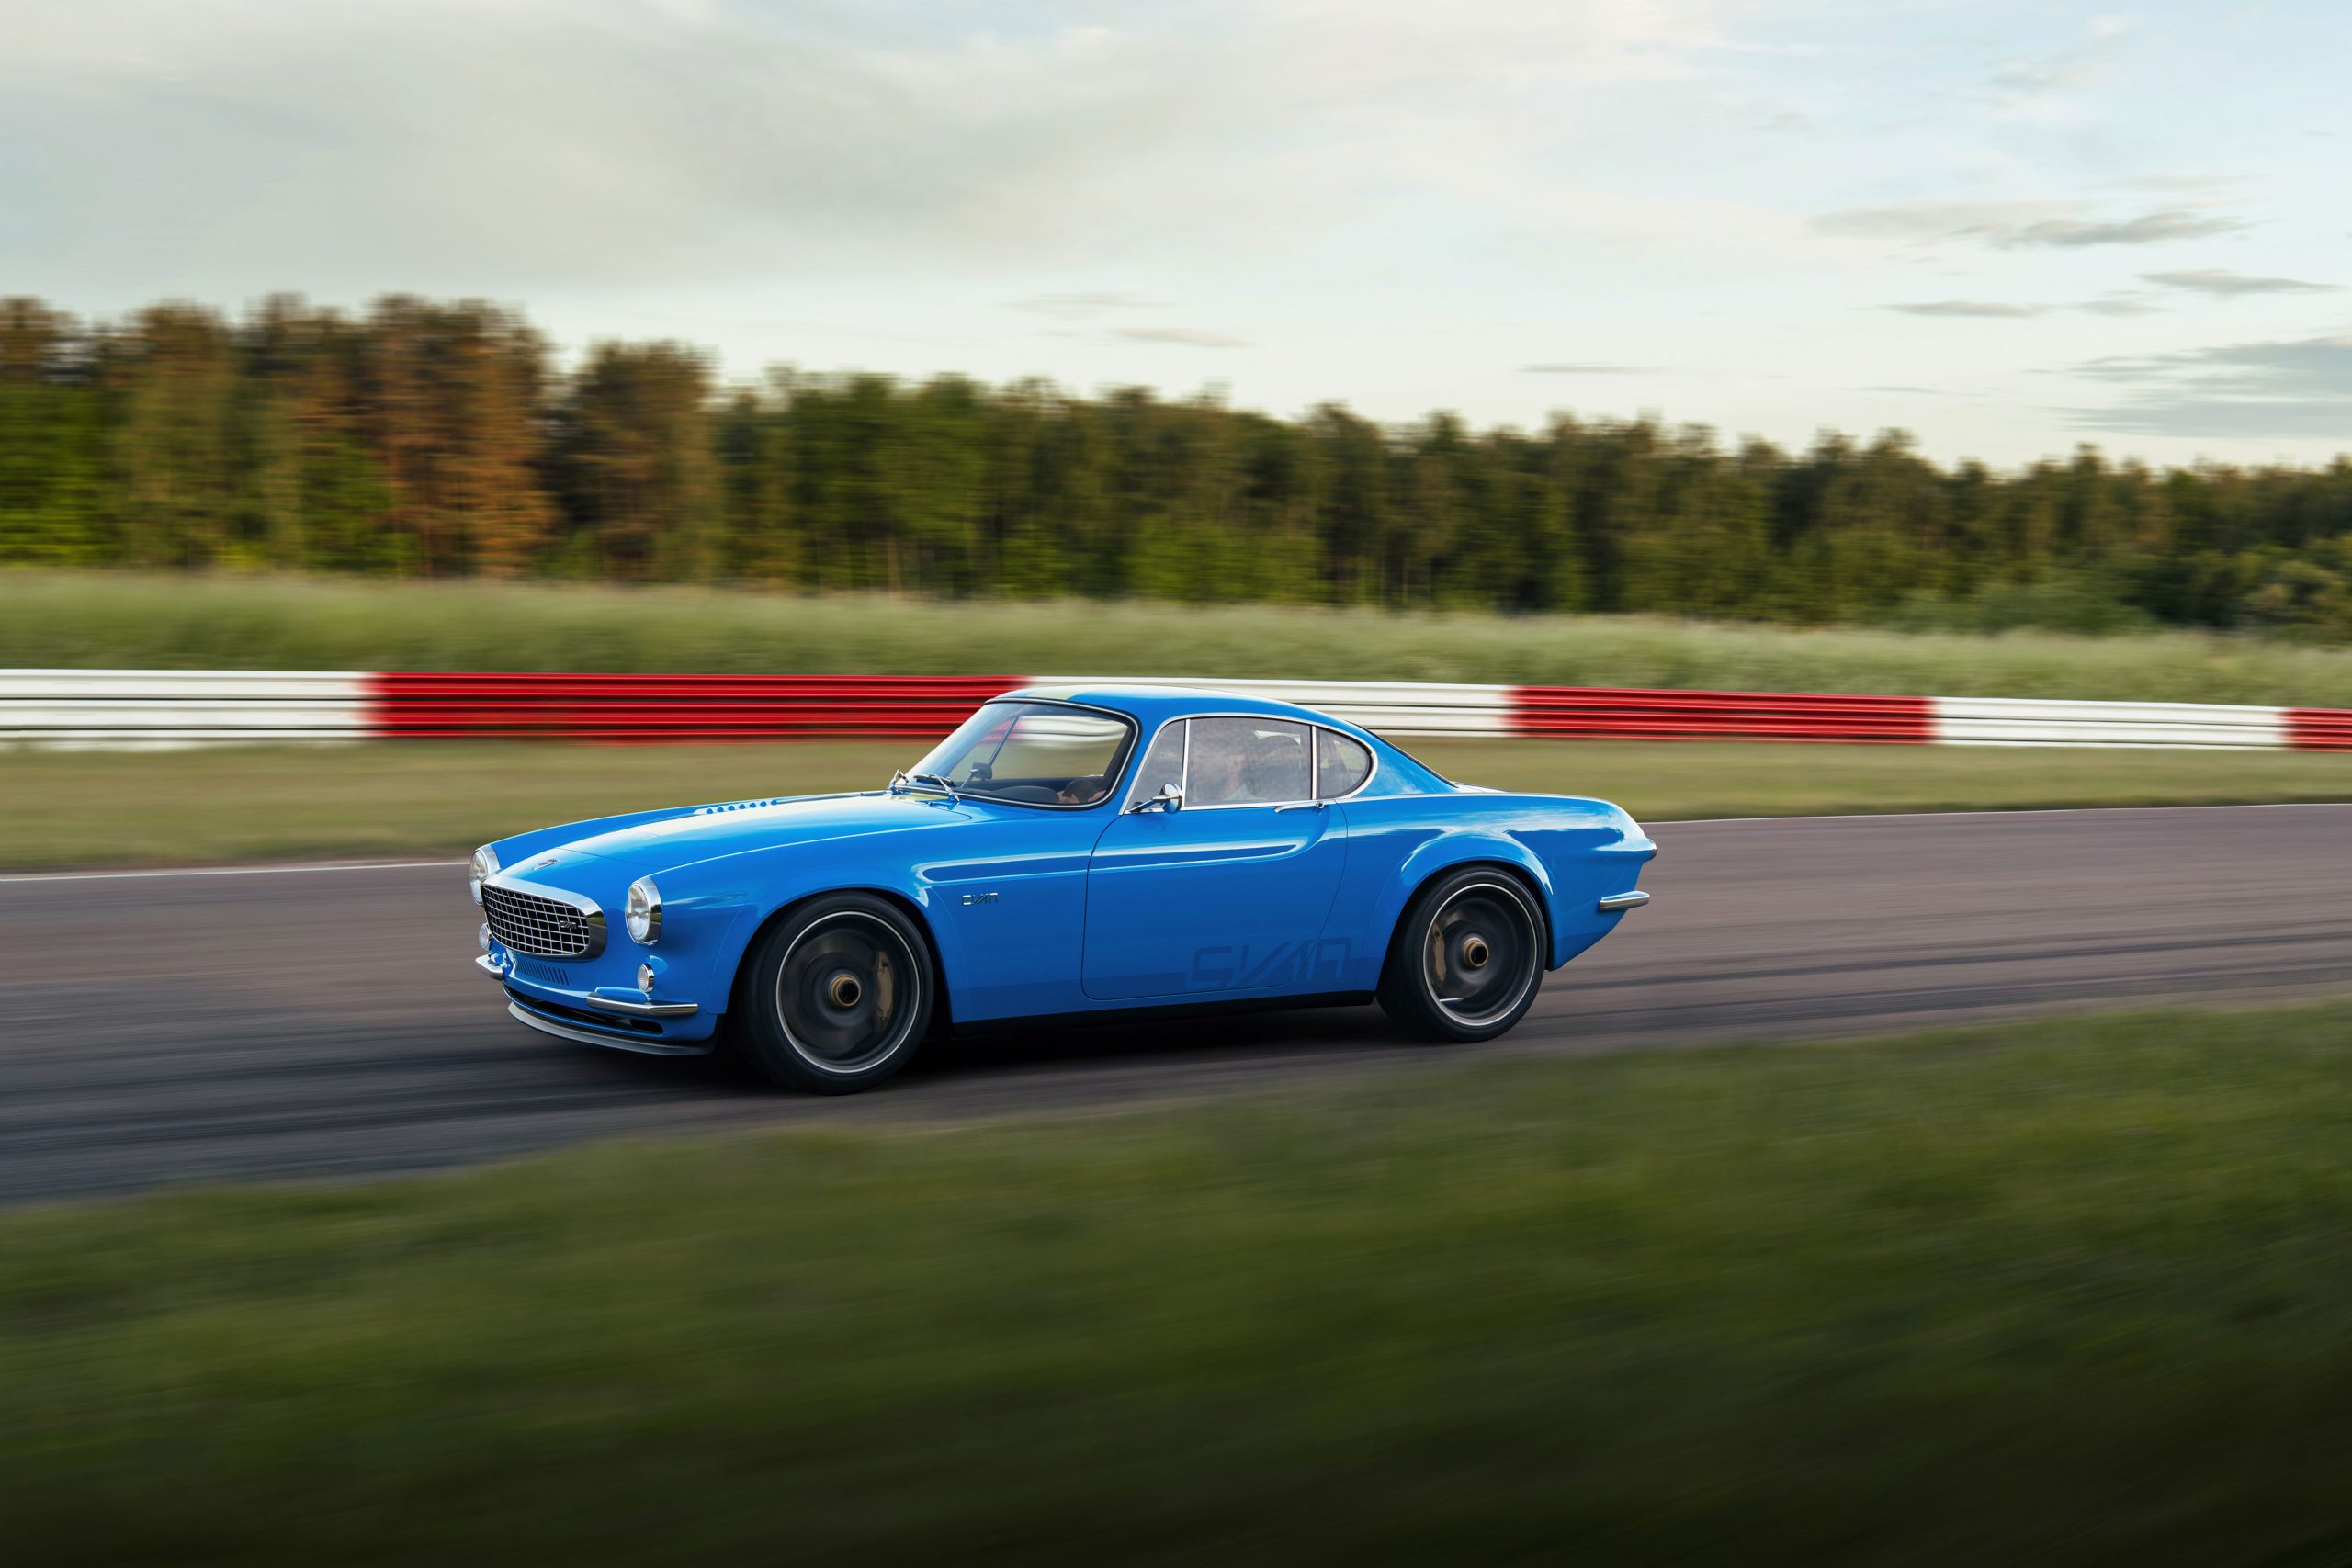 Volvo P1800 Cyan on the track